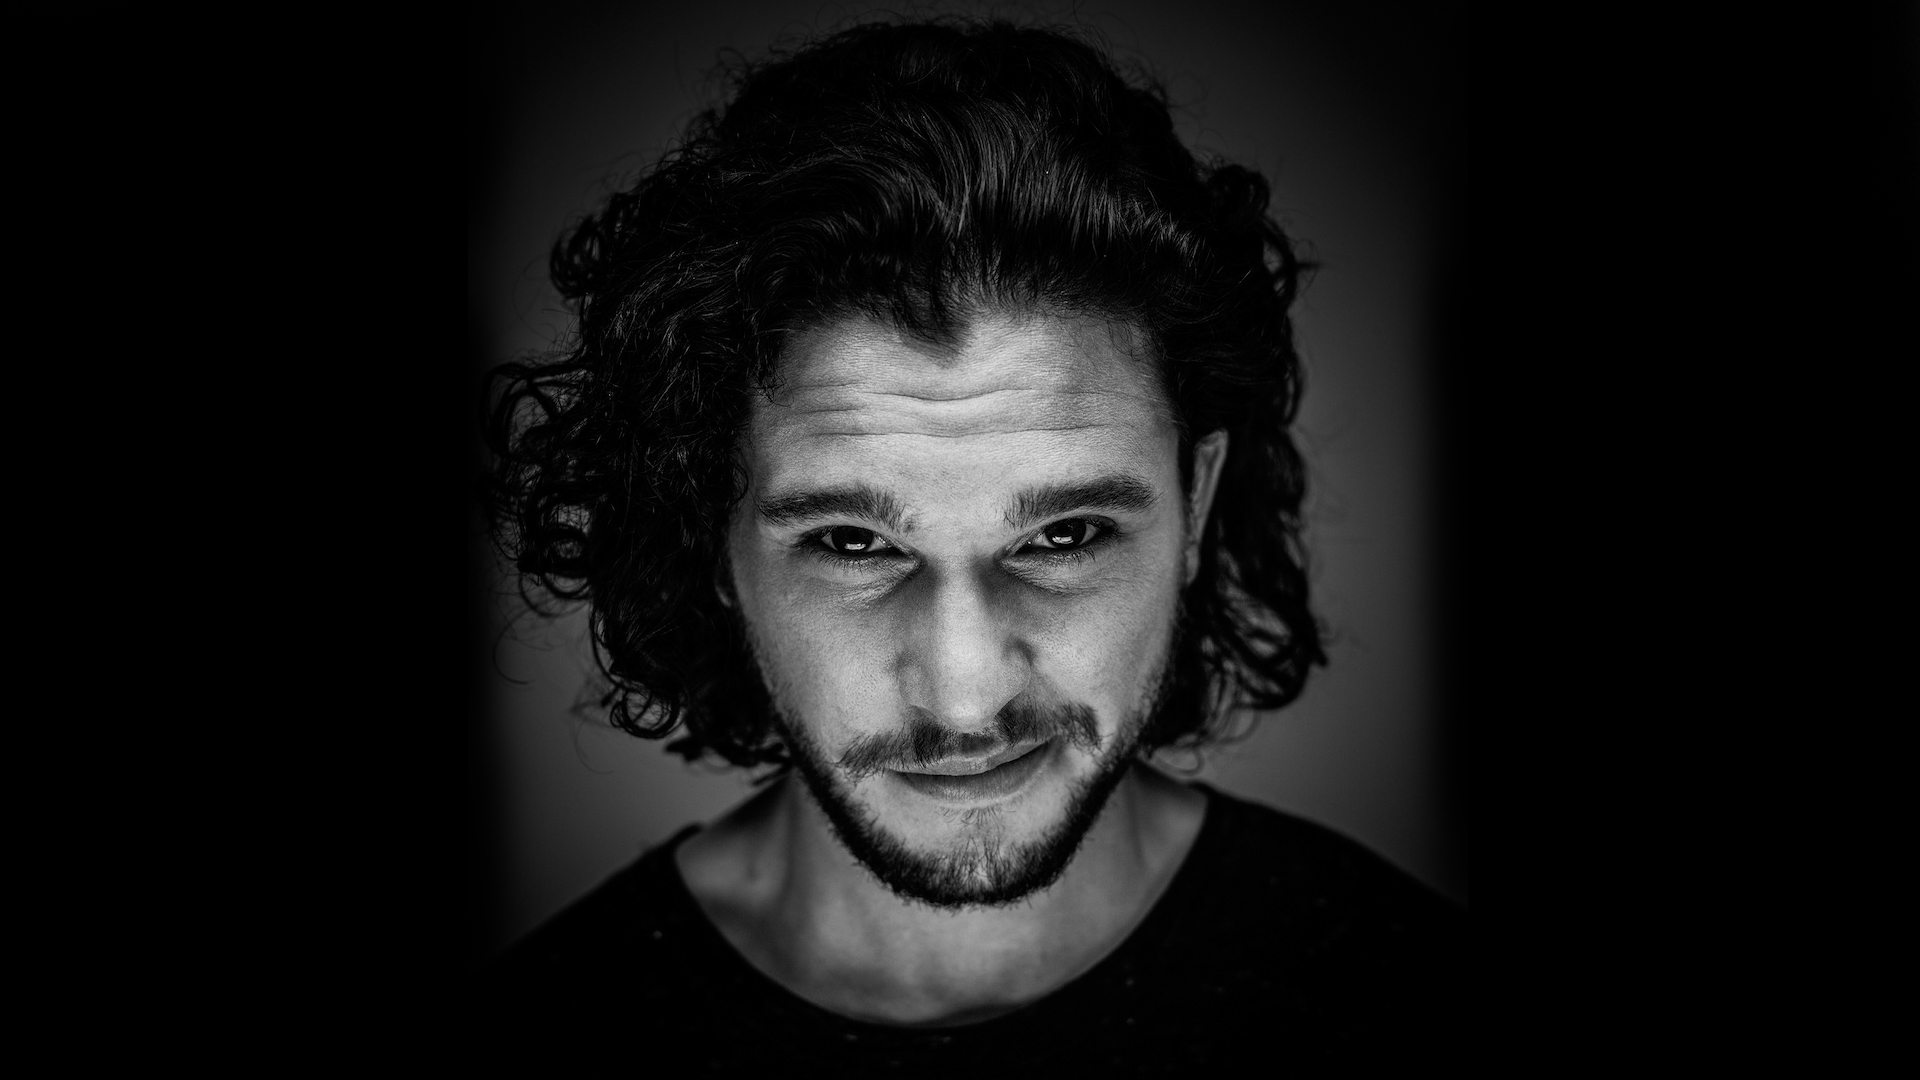 kit harington wallpaper 57662